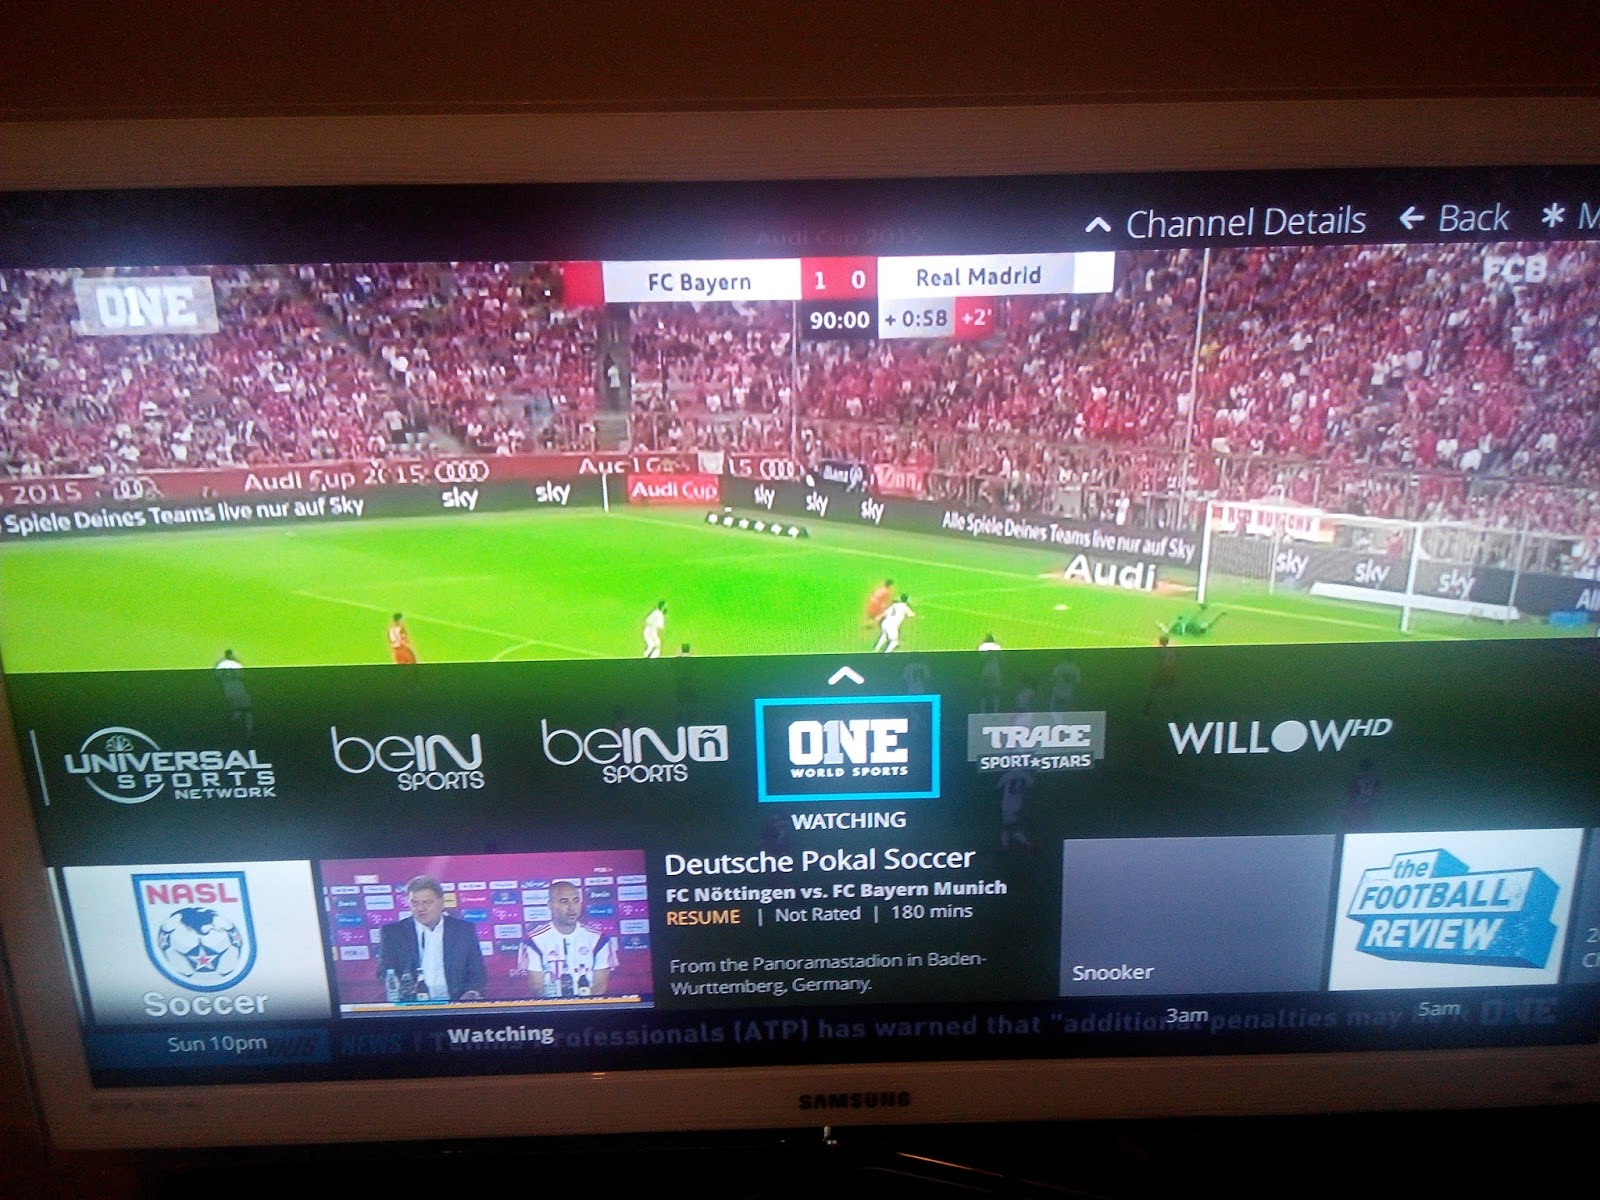 bein sports spain tv guide